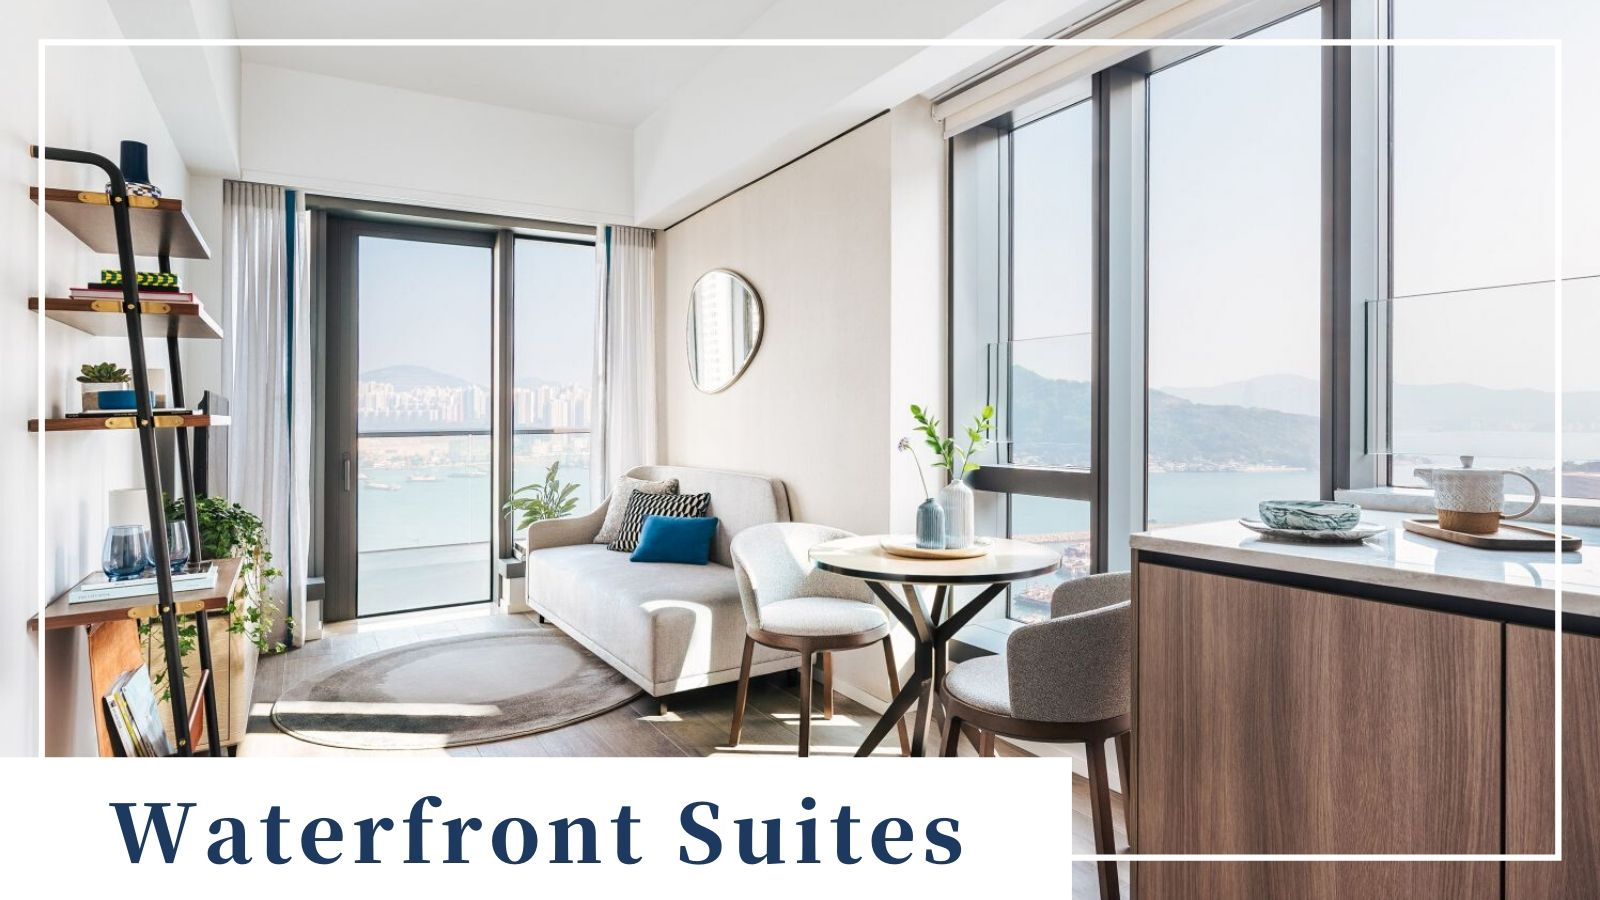 Waterfront Suites